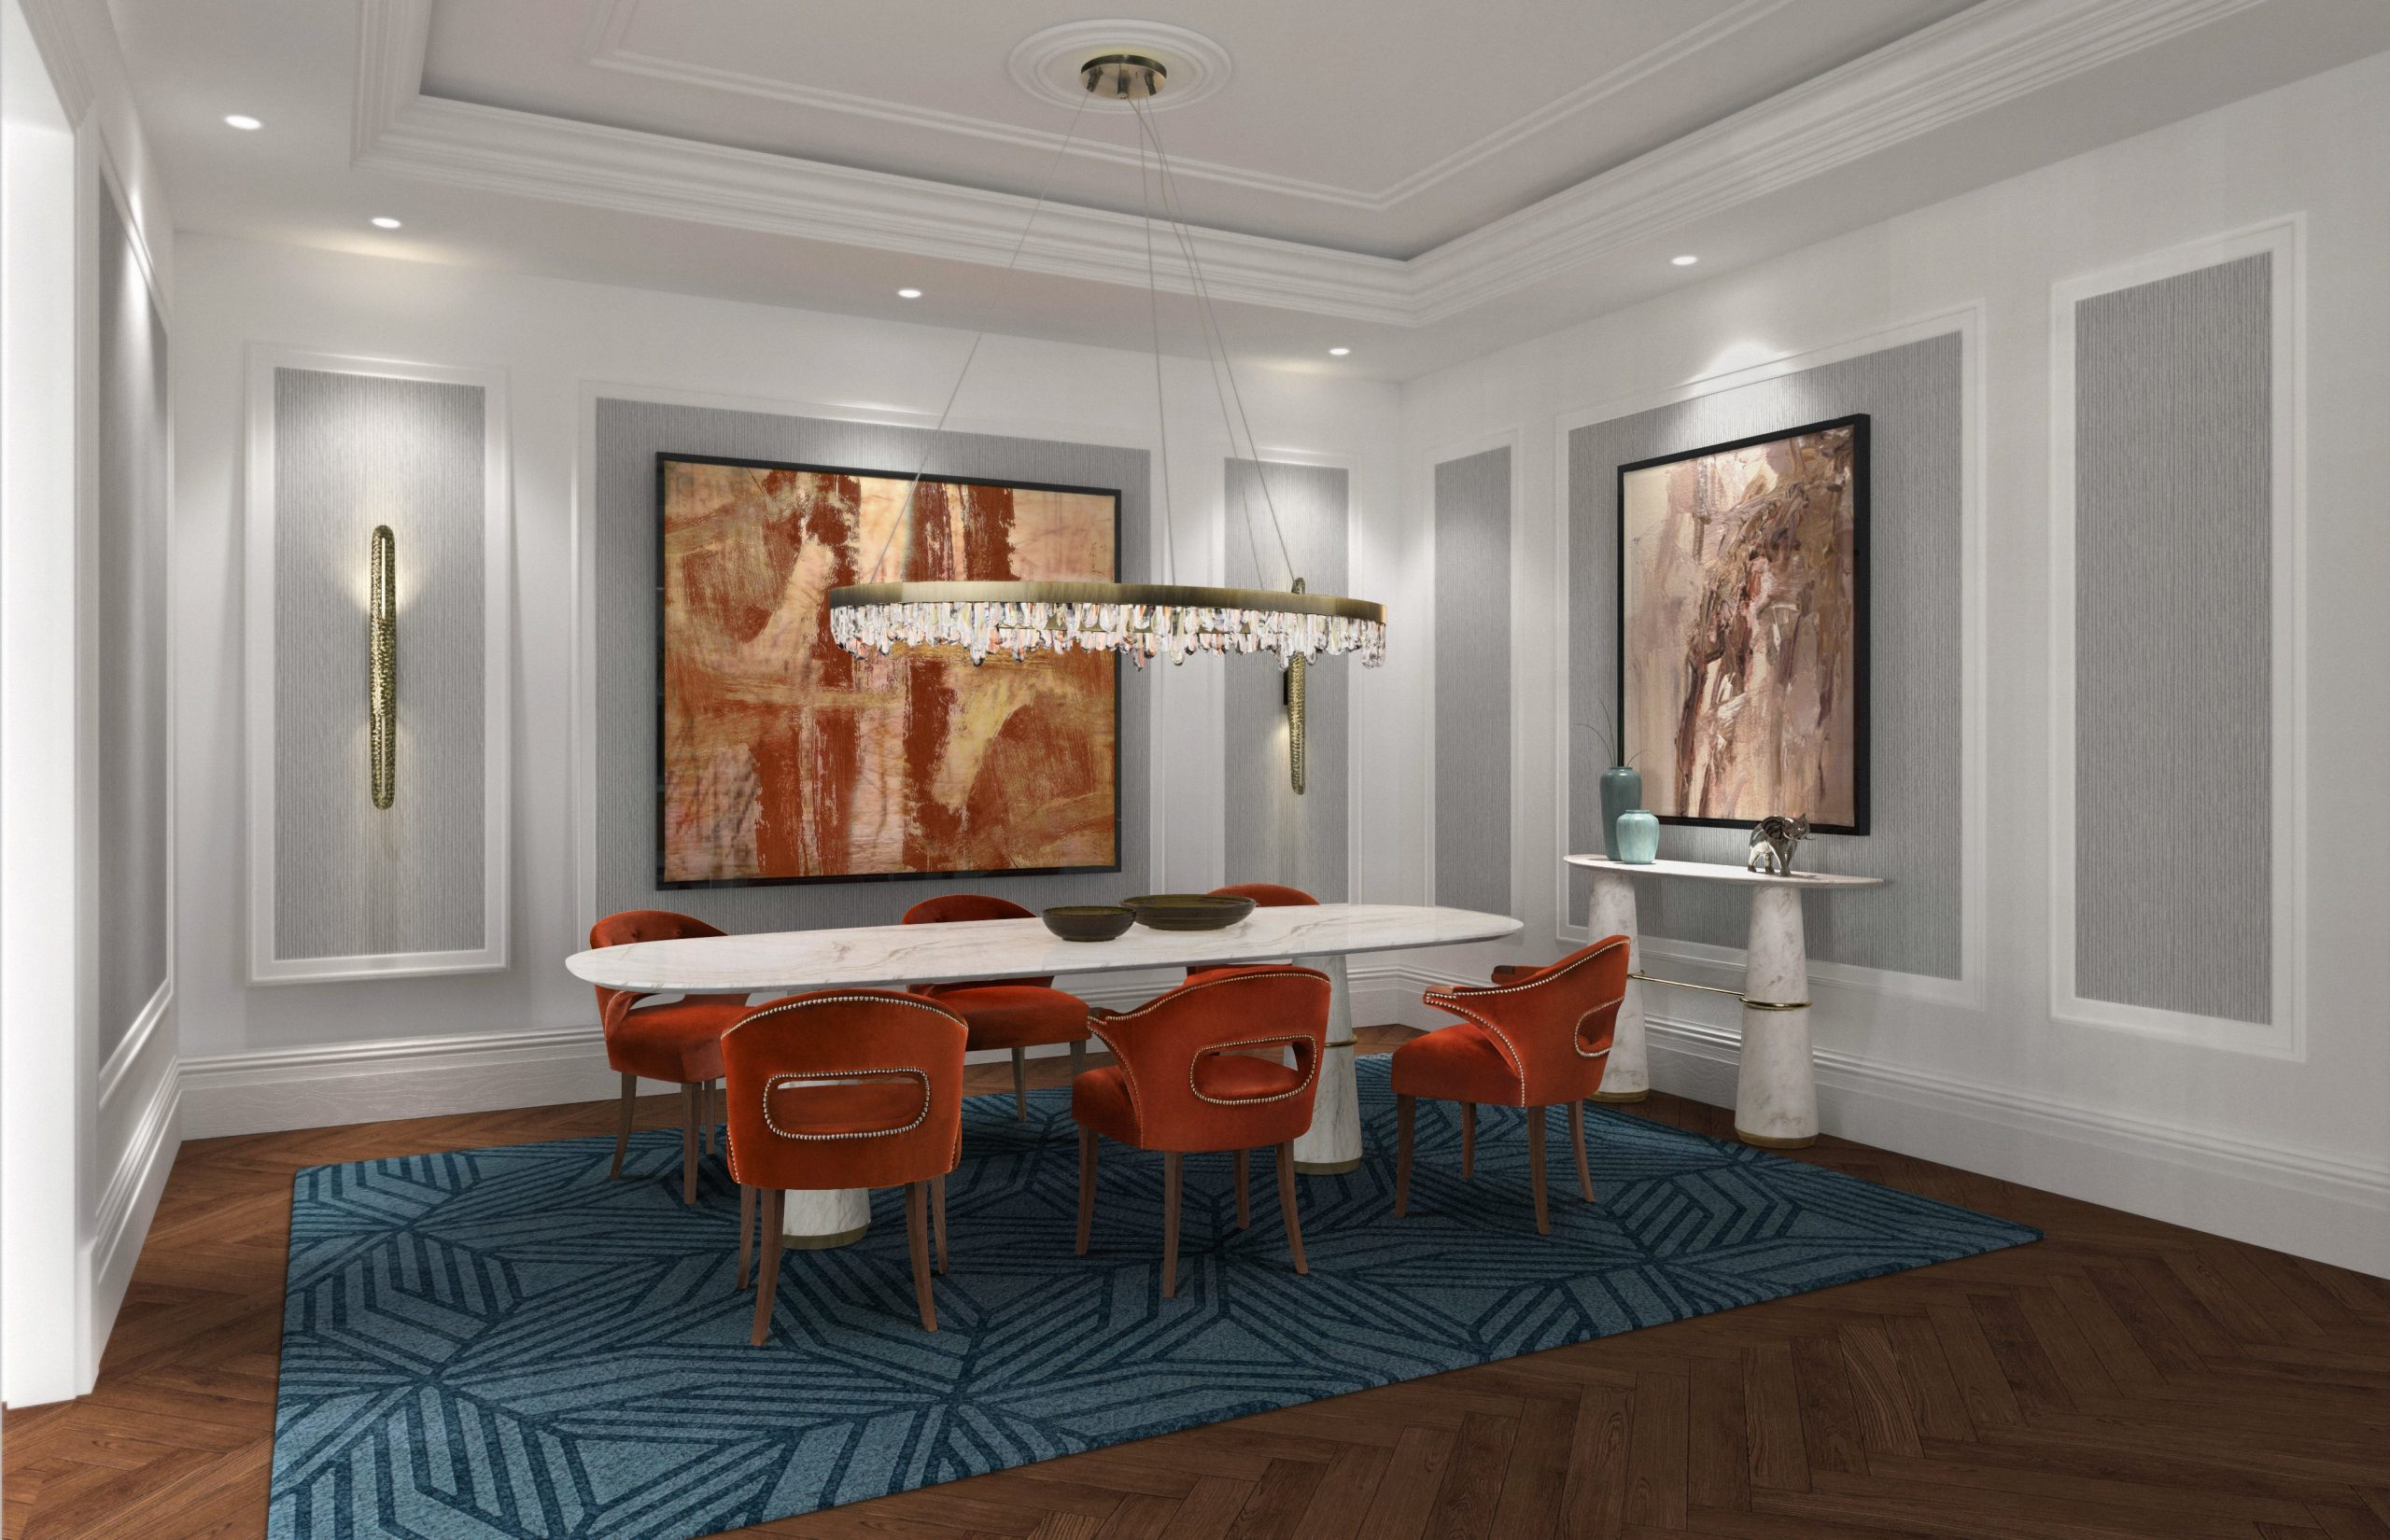 20 Dining Chairs You Will Need For A Modern Dining Room dining chairs 20 Dining Chairs You Will Need For A Modern Dining Room brabbu ambience press 115 HR scaled